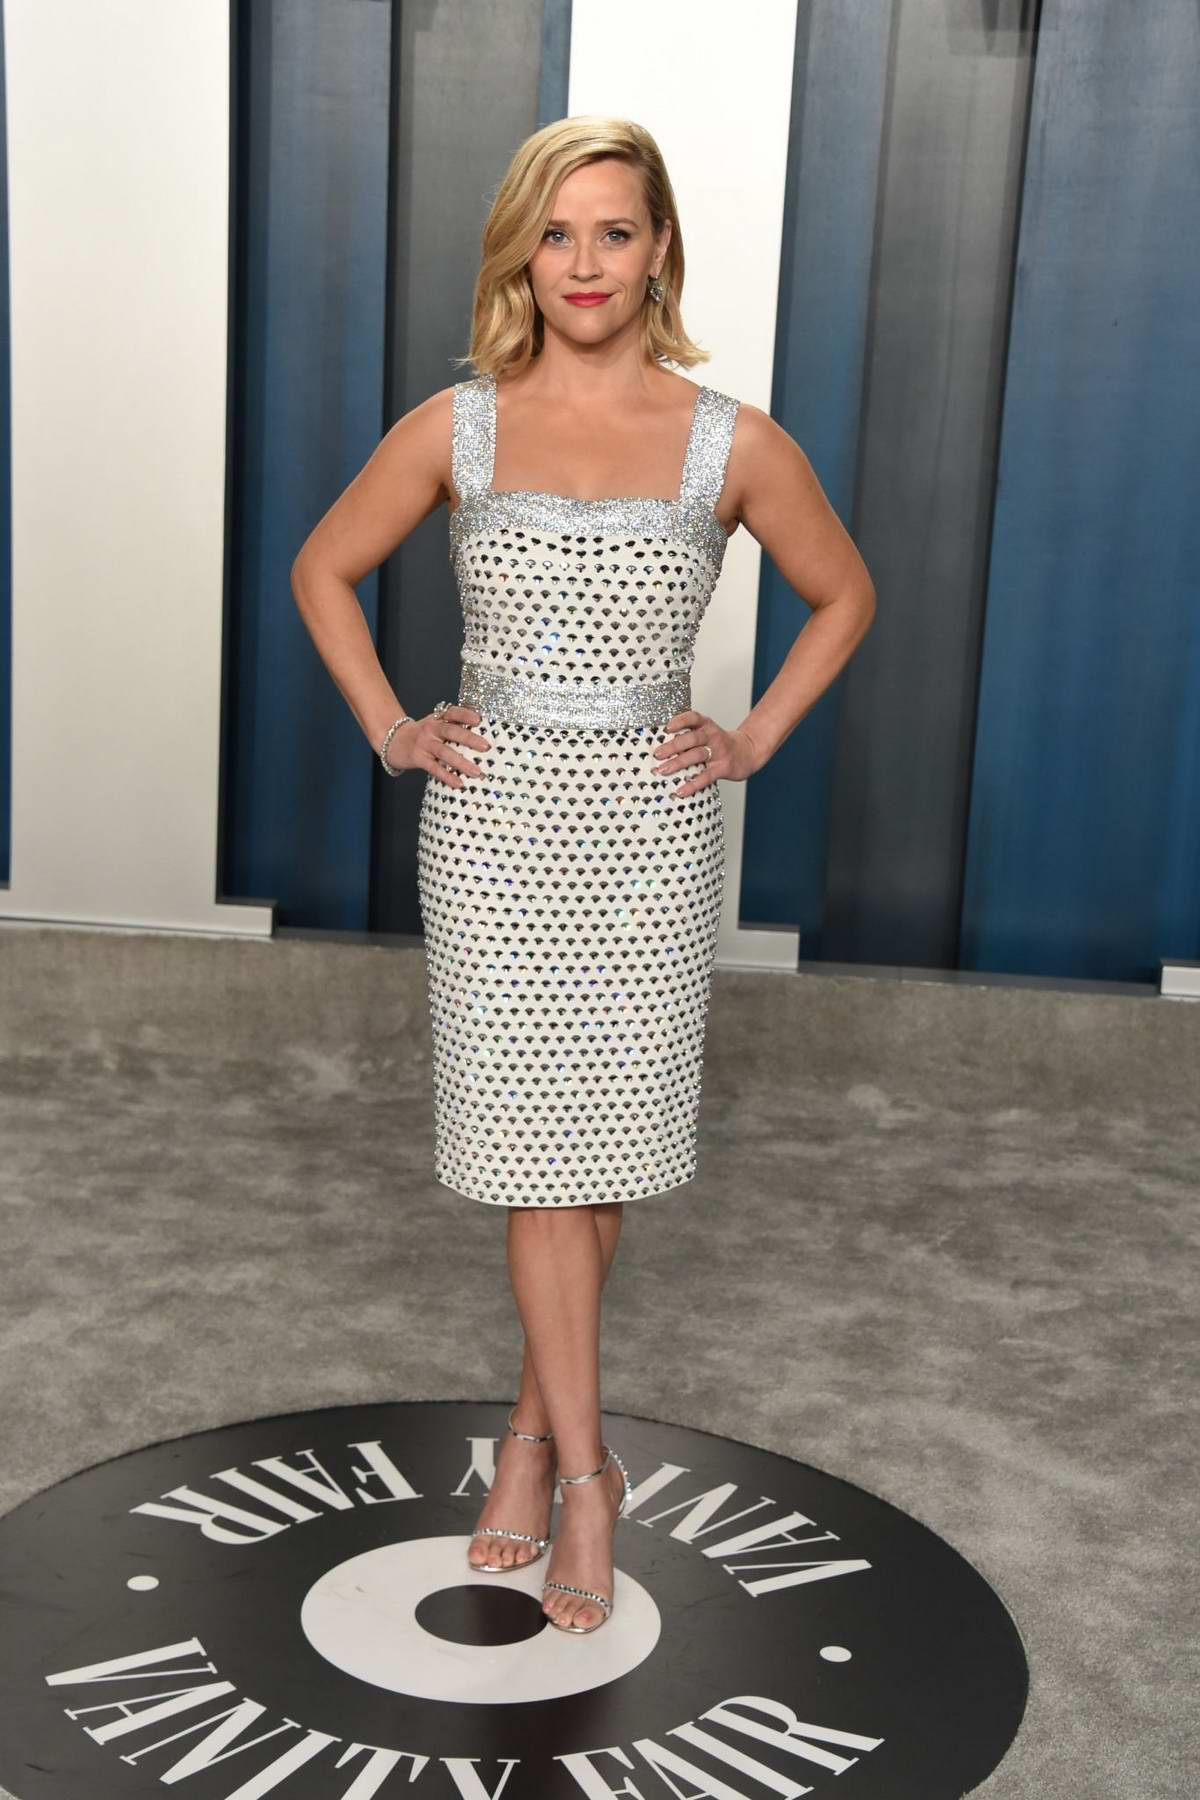 Reese Witherspoon attends the 2020 Vanity Fair Oscar Party at Wallis Annenberg Center for the Performing Arts in Los Angeles